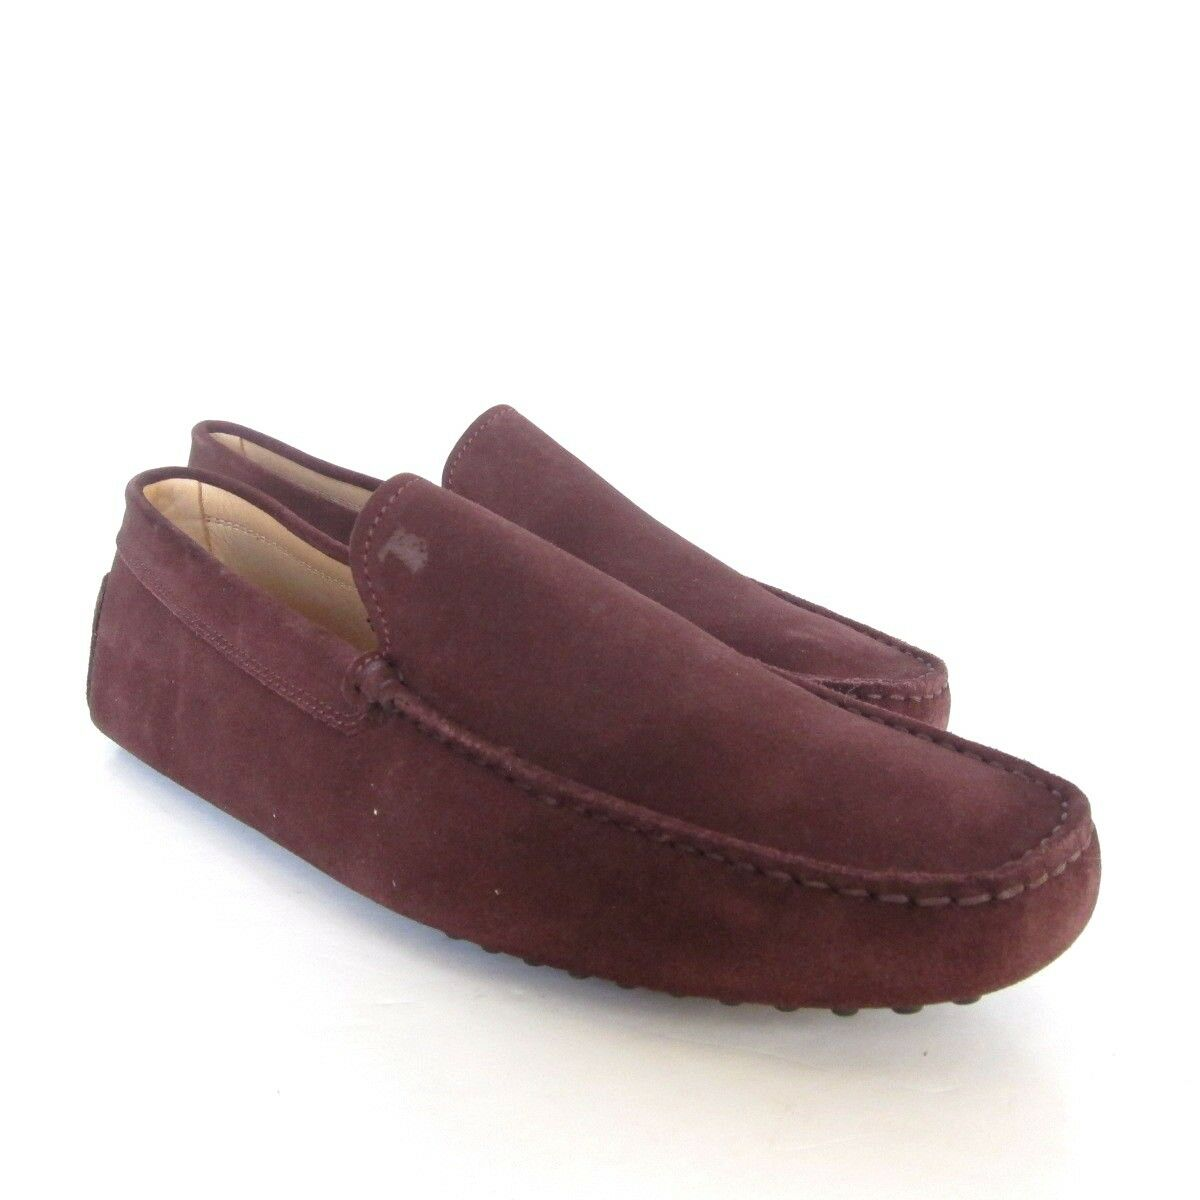 Scarpe casual da uomo  W-2032160 New Tods Brown Suede Gommini Drivers Loafers Size 10.5 US-11.5